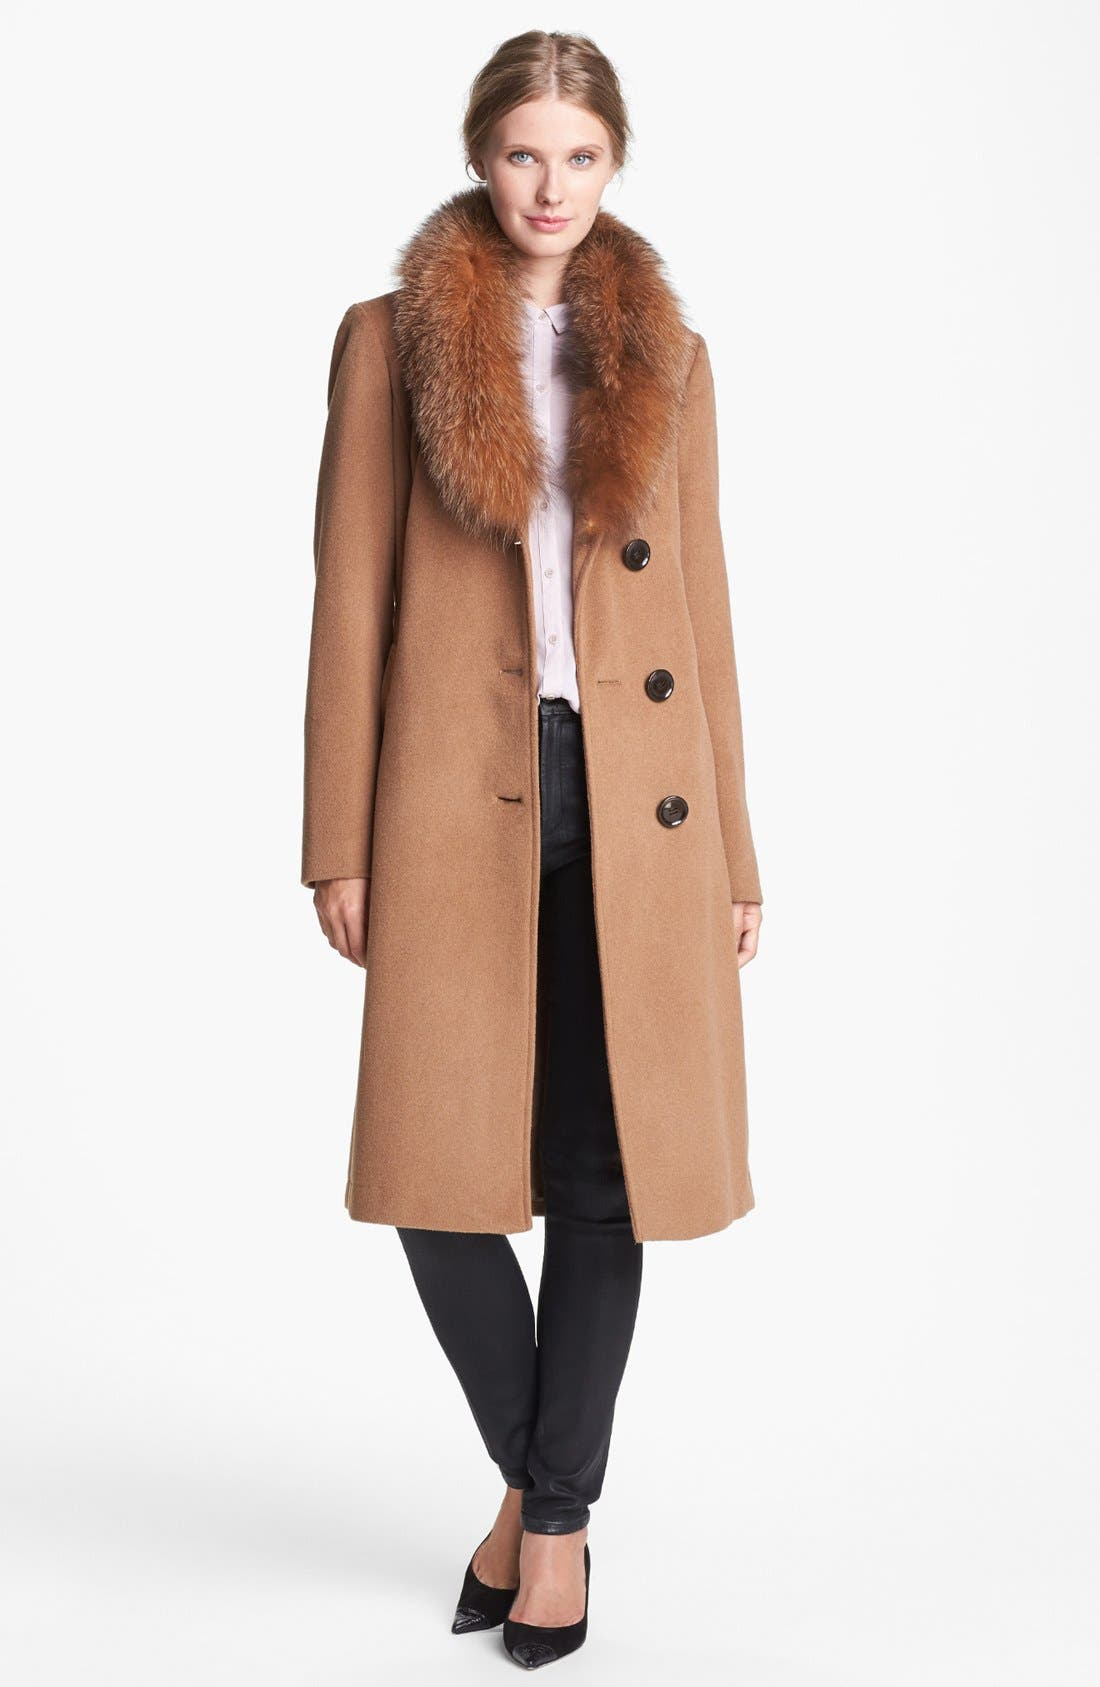 Alternate Image 1 Selected - Ellen Tracy Genuine Fox Fur Trim Belted Long Coat (Regular & Petite) (Online Only)